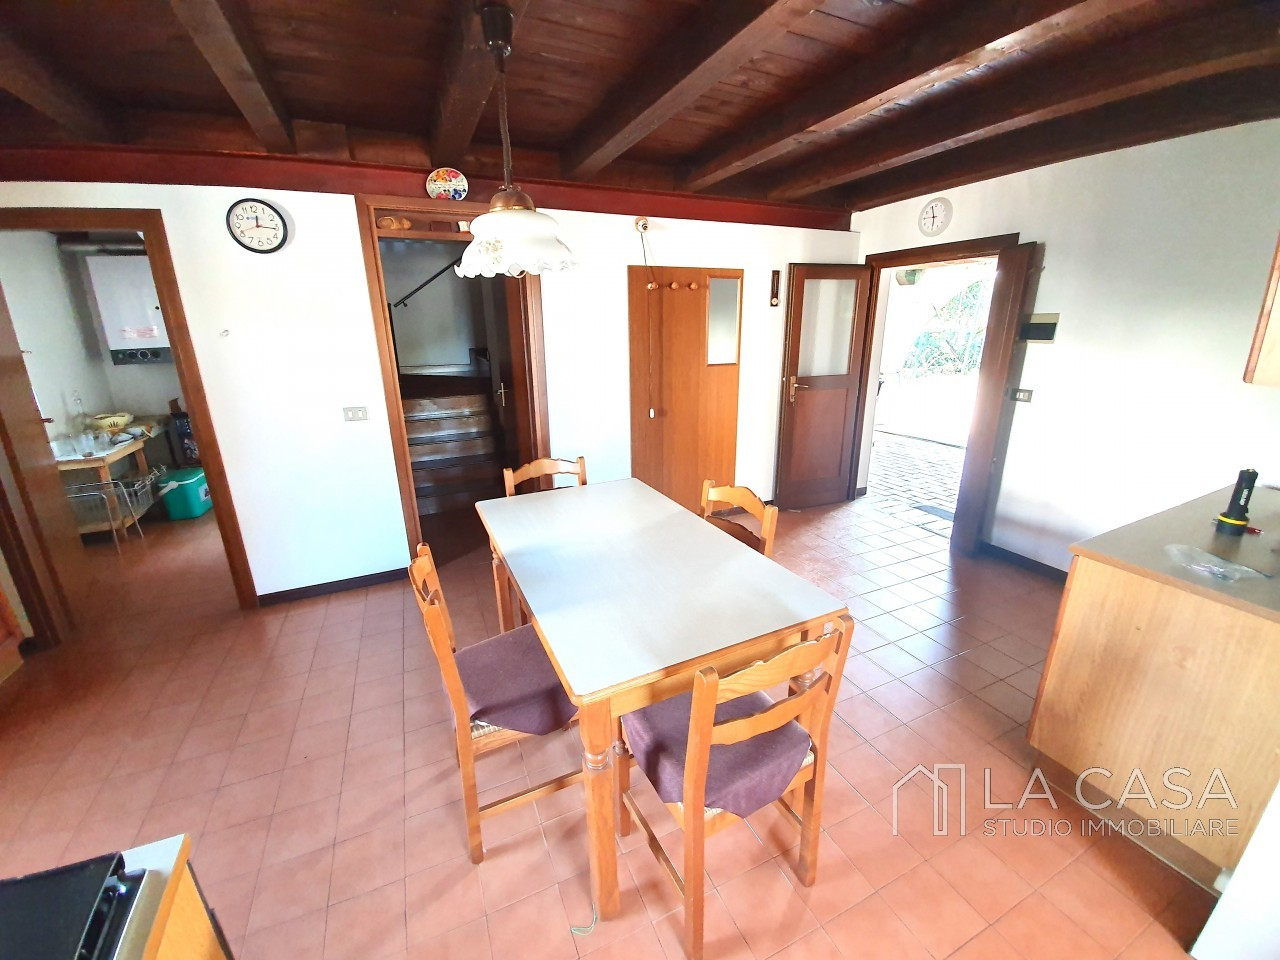 Casa indipendente in Linea - Rif.C6 https://images.gestionaleimmobiliare.it/foto/annunci/191125/2114313/1280x1280/008__20191125_115631_wmk_1.jpg